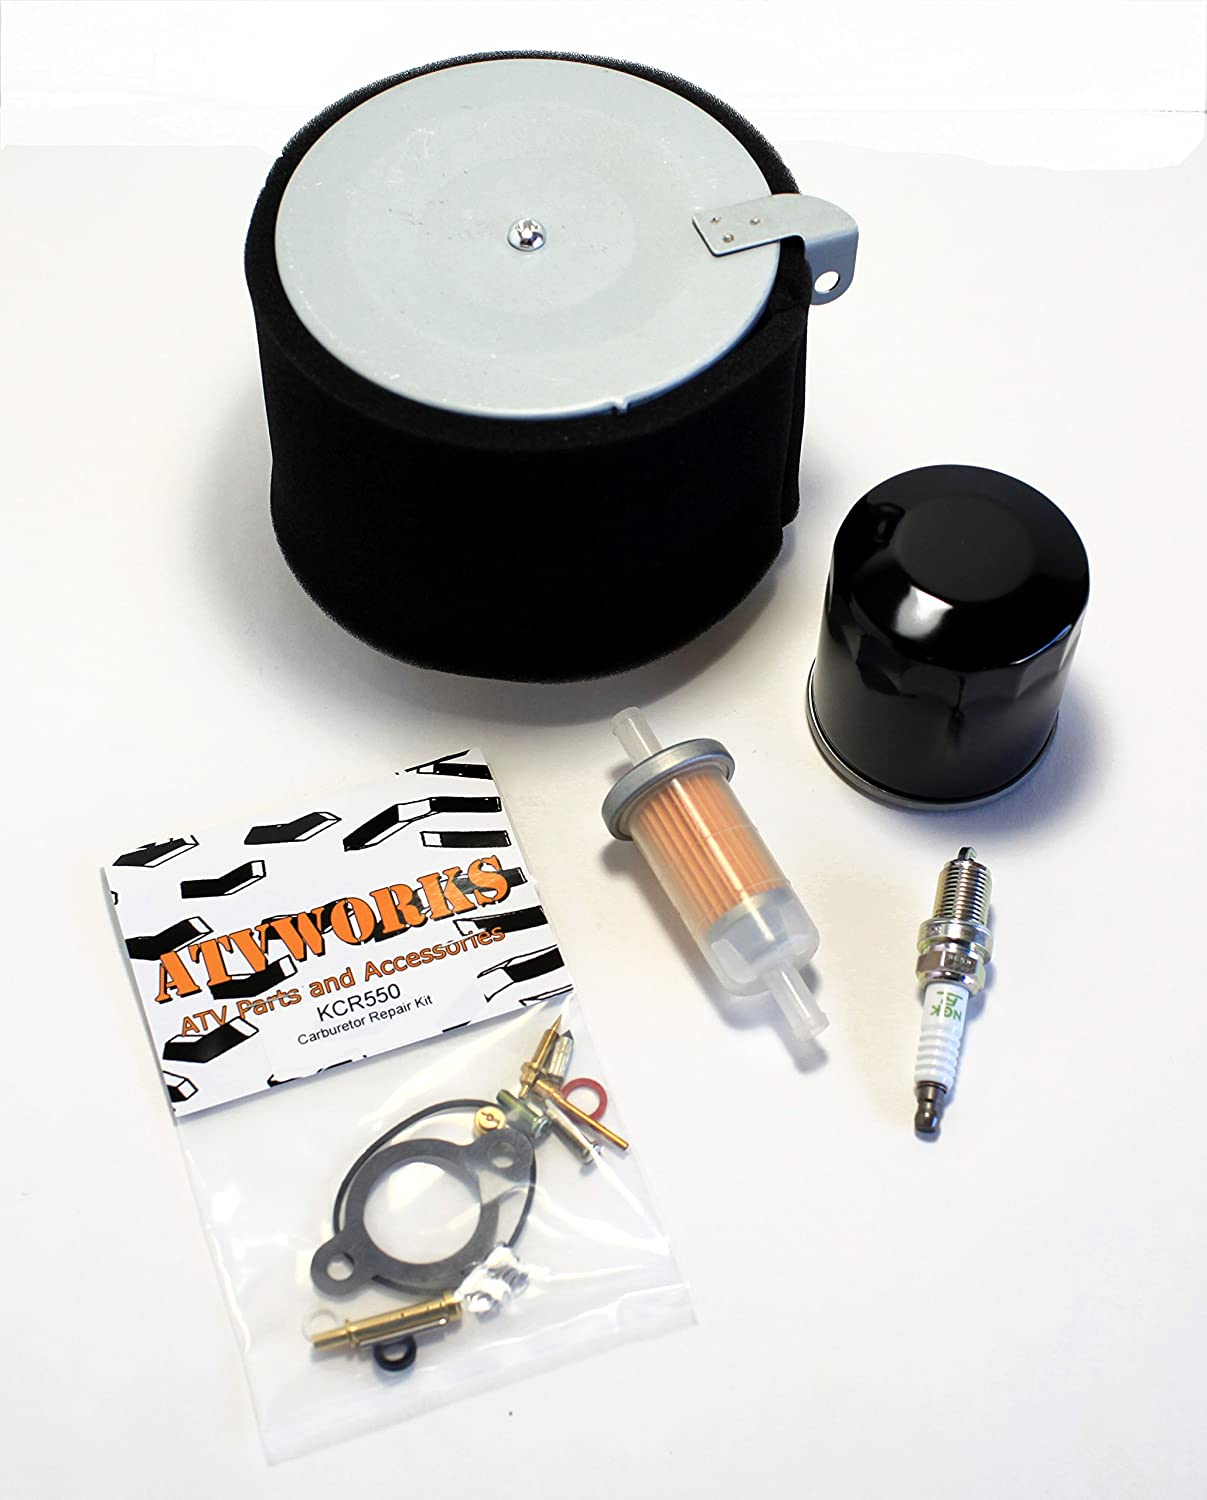 Kawasaki Mule Air Oil Fuel Filter Replacement Kit